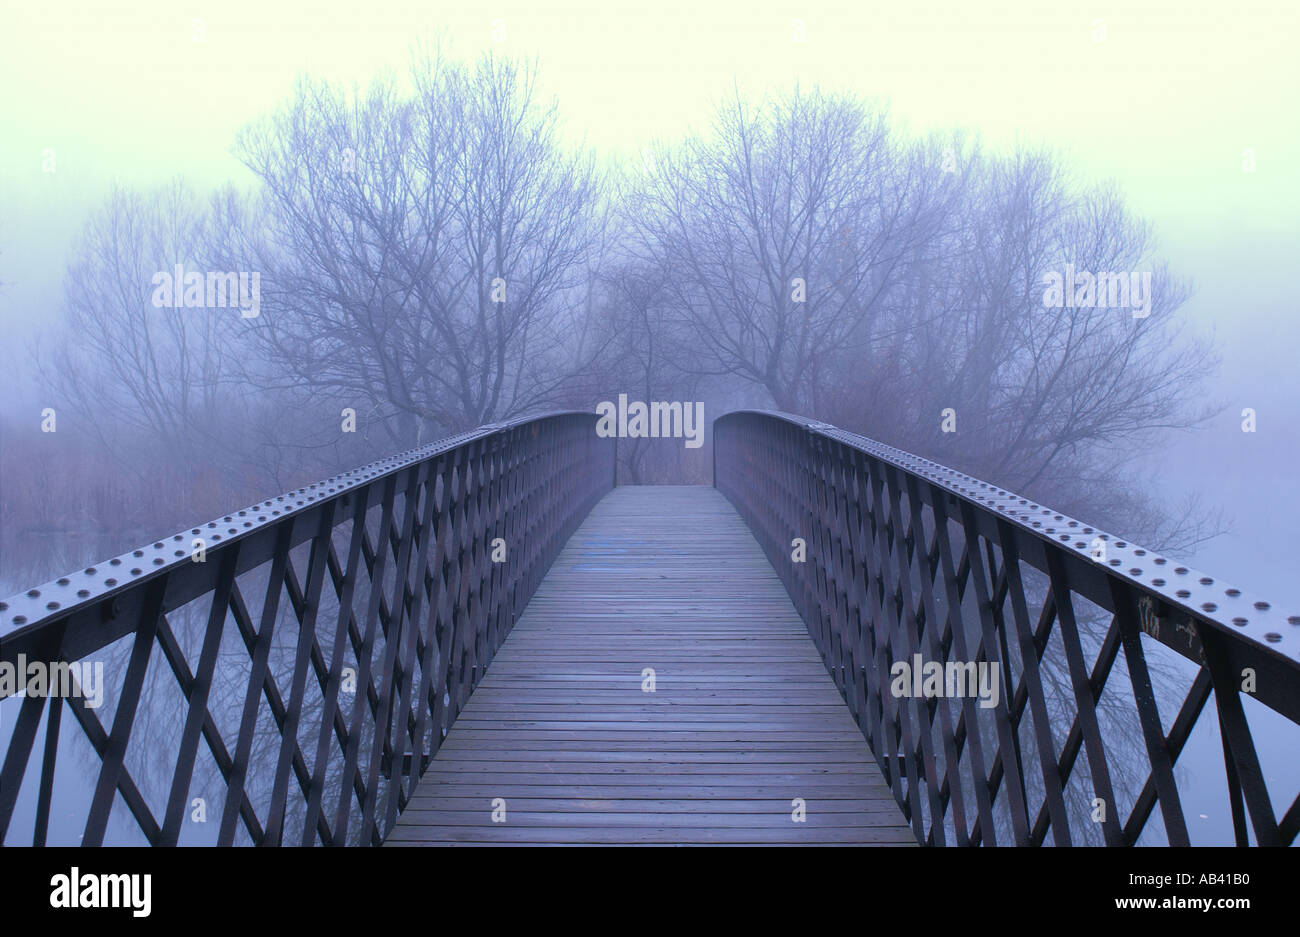 Bridge leading into foggy trees - Stock Image